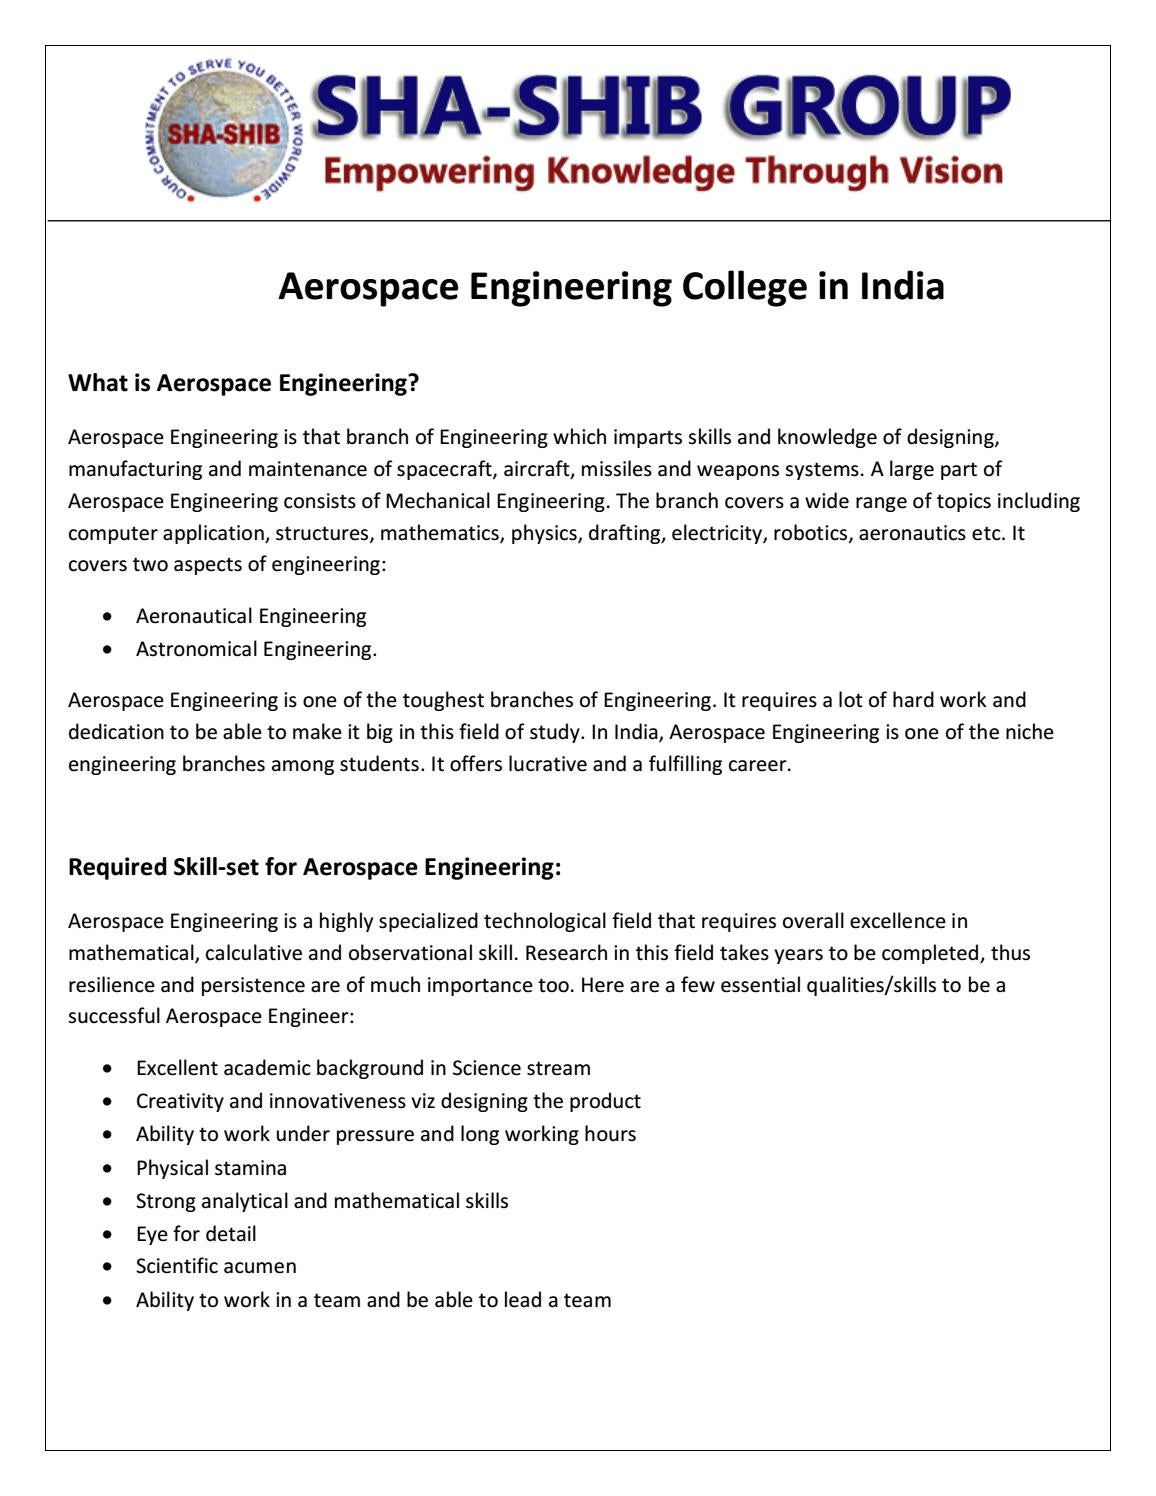 Aerospace Engineering Colleges >> Aerospace Engineering College In India Sha Shib Group By